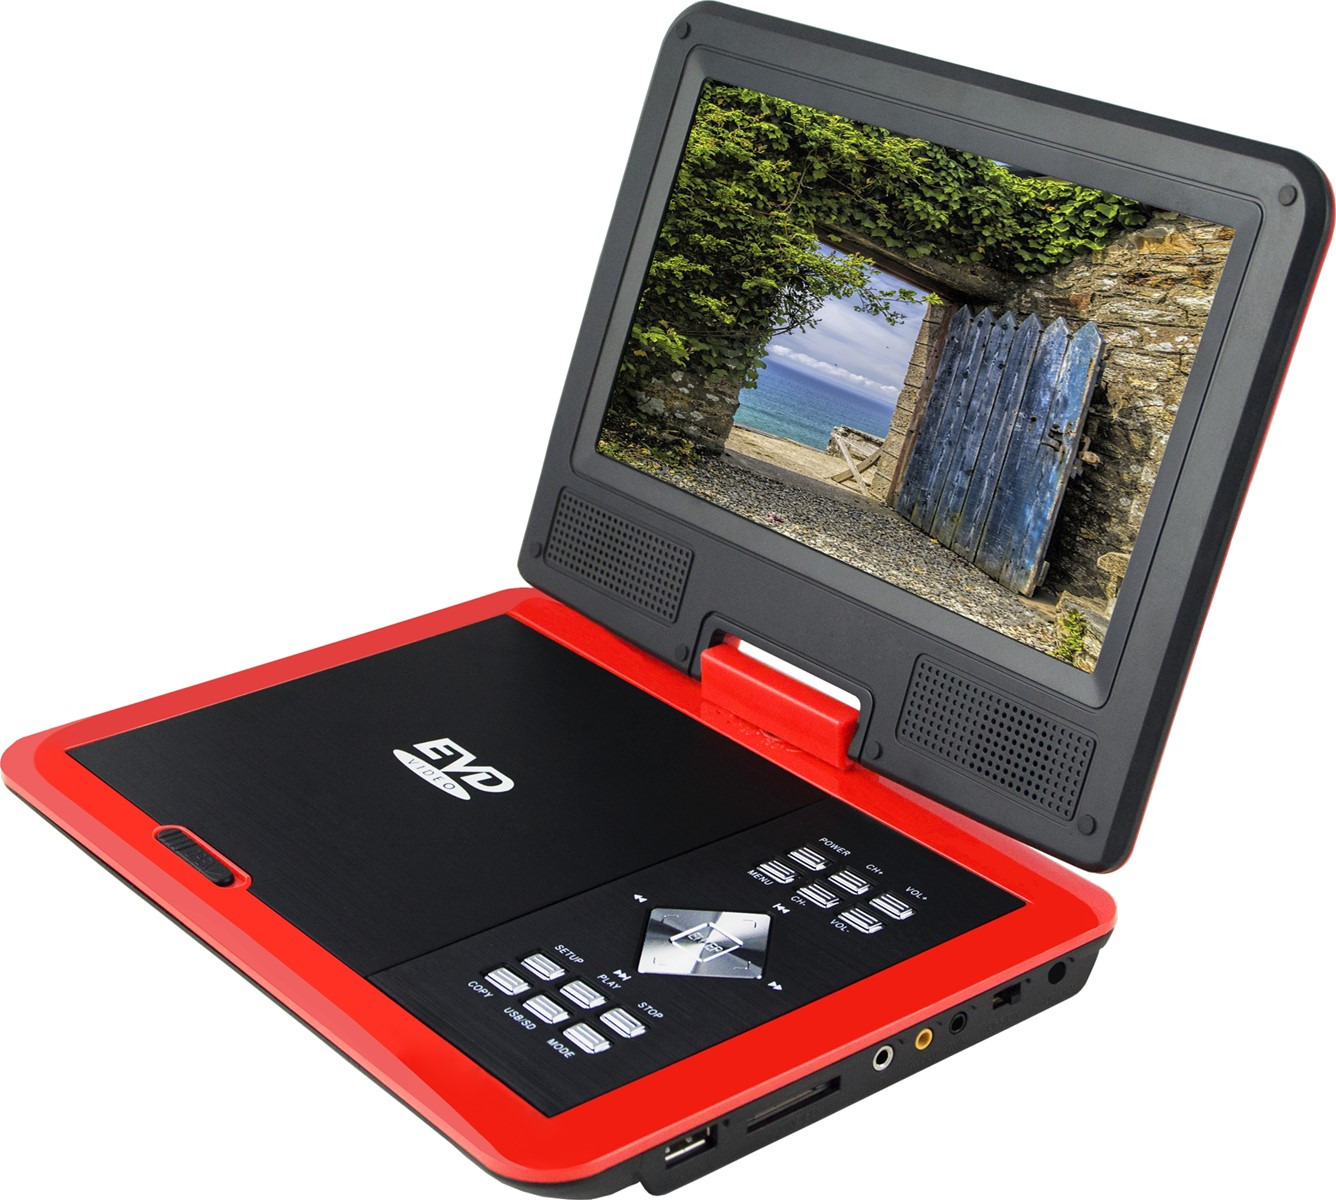 High Definition Portable DVD With Analog TV